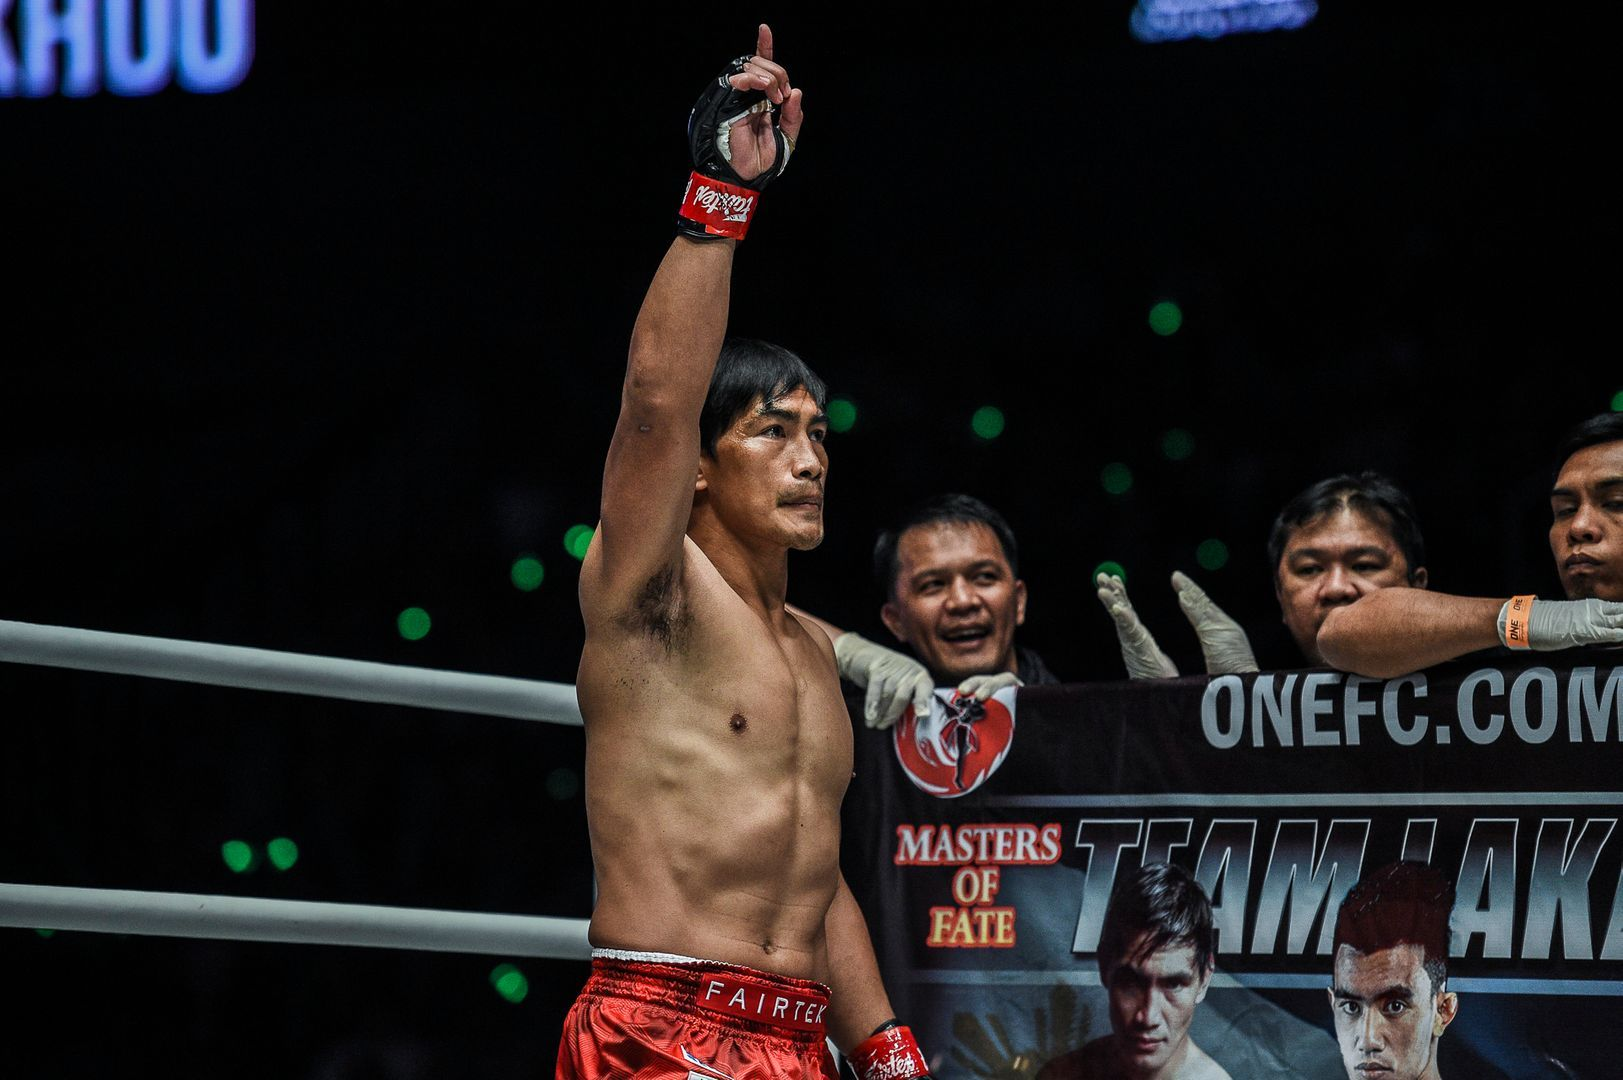 Former ONE Lightweight World Champion Eduard Folayang at ONE: MASTERS OF FATE